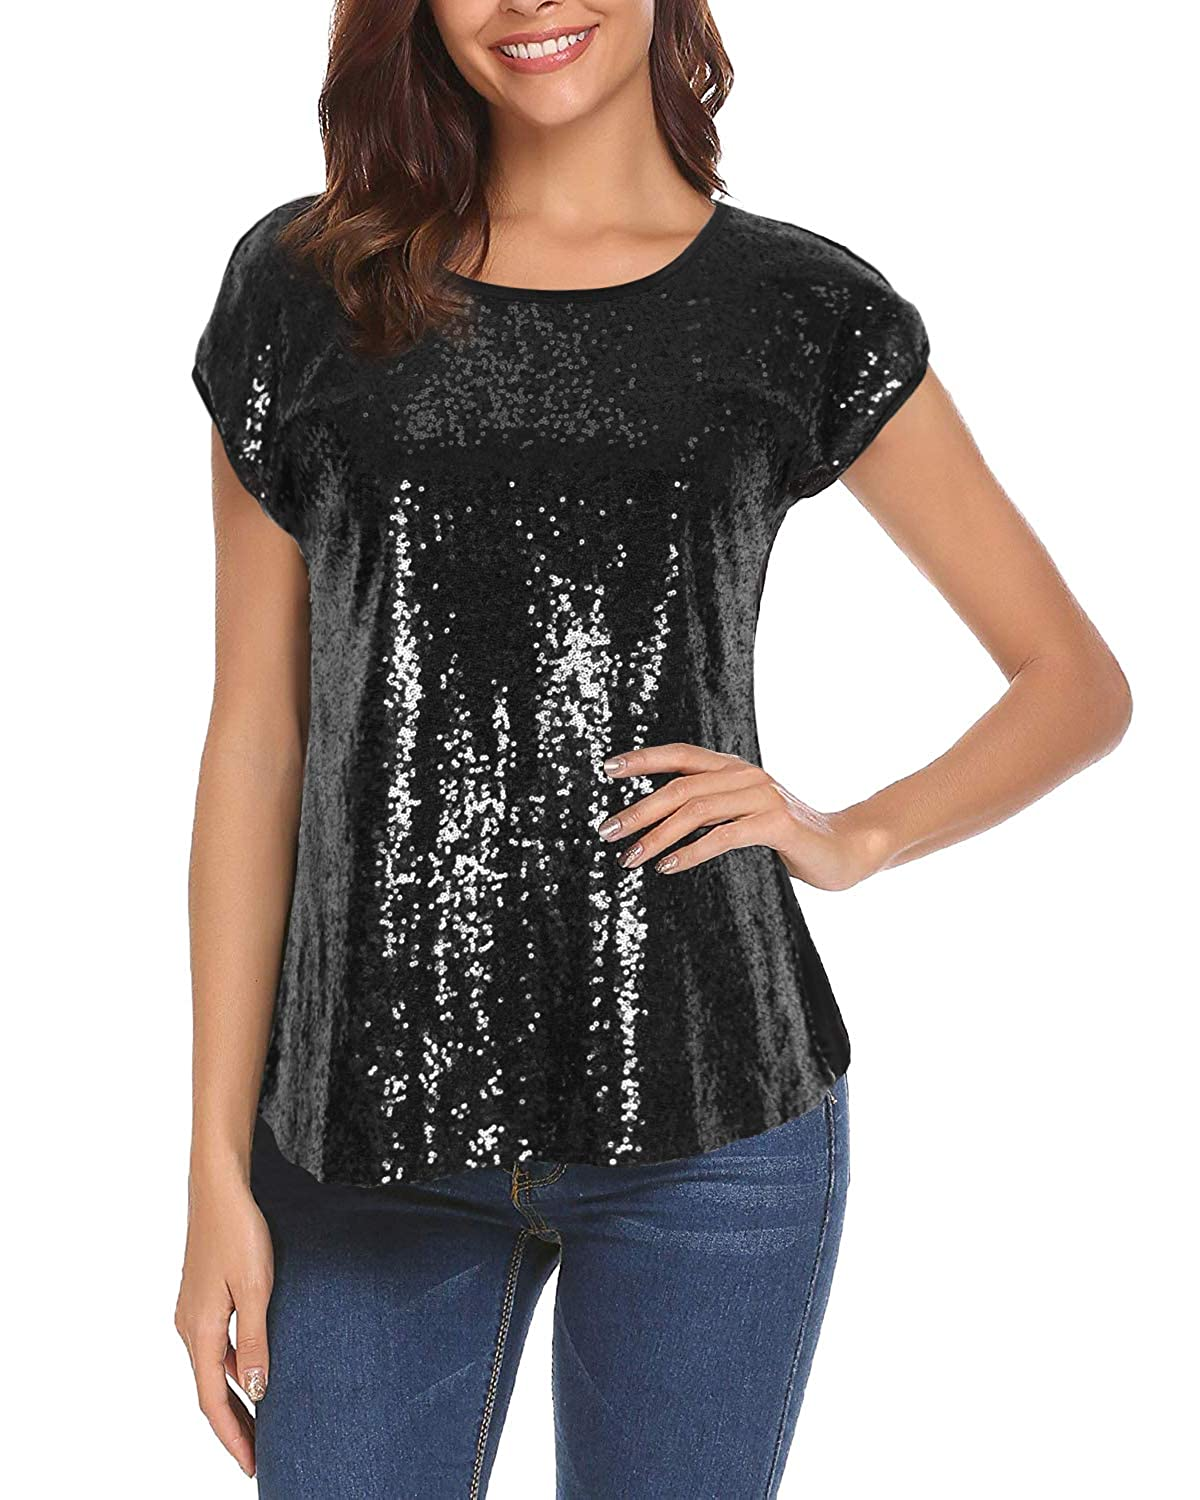 6e6b24b58d3876 Women Sequin Tops Glitter Shimmer Tunic Loose Bat Sleeve Sparkle T-Shirt  Blouses Cocktail Party at Amazon Women's Clothing store: